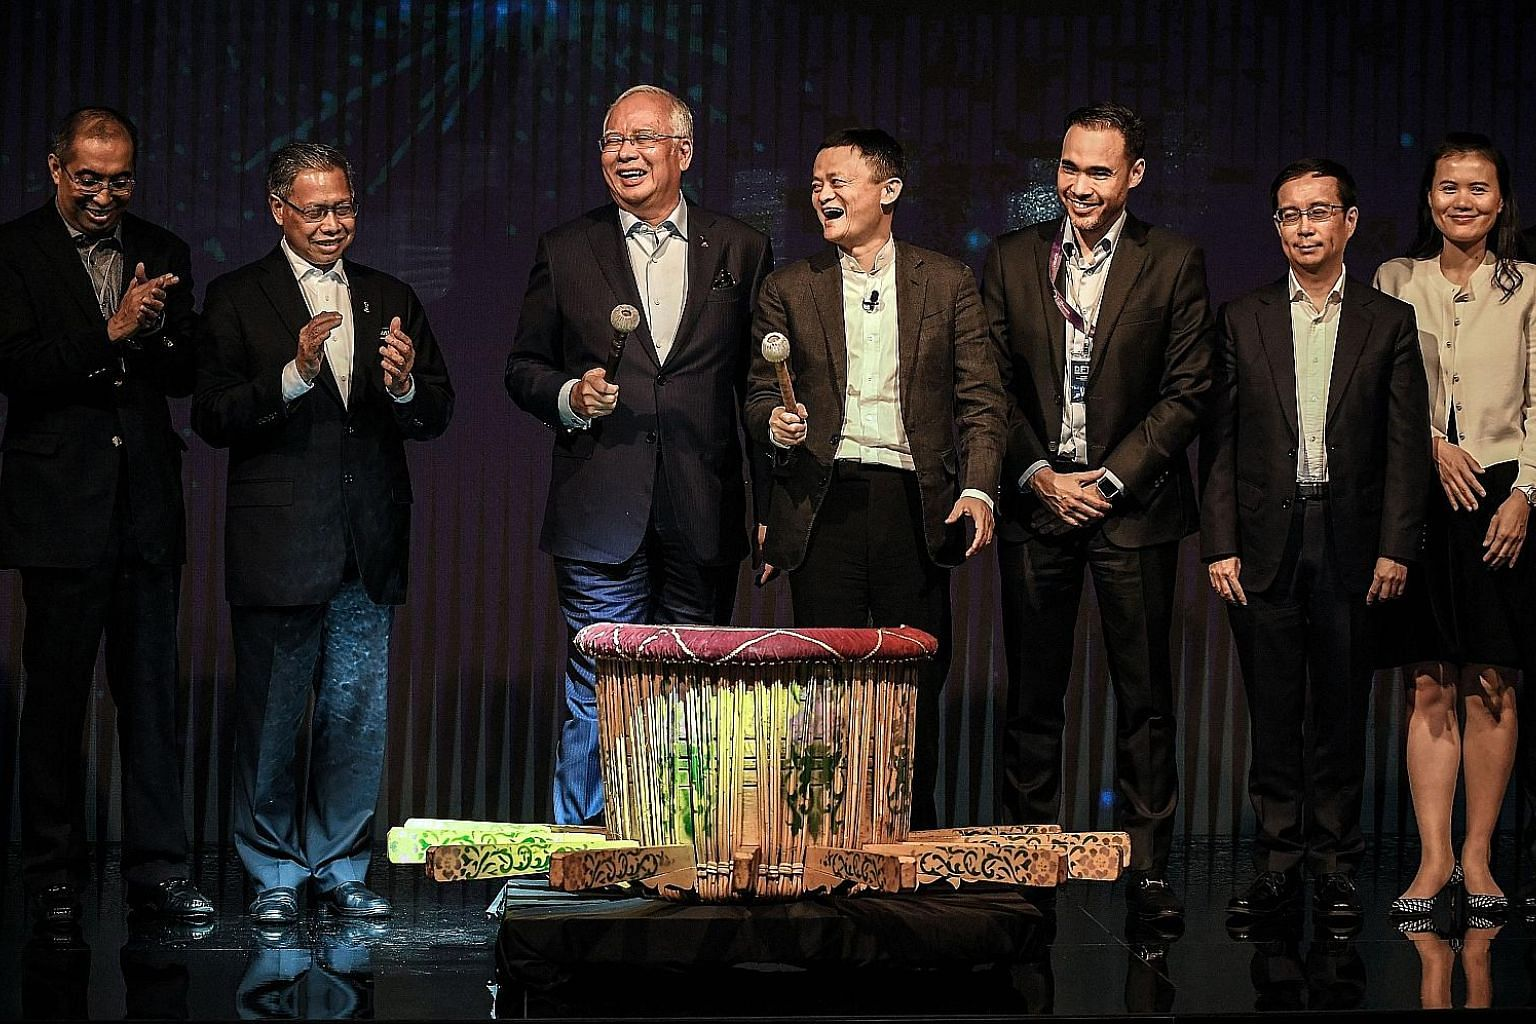 PM Najib and Mr Ma (holding microphones) launched Malaysia's Digital Free Trade Zone yesterday.